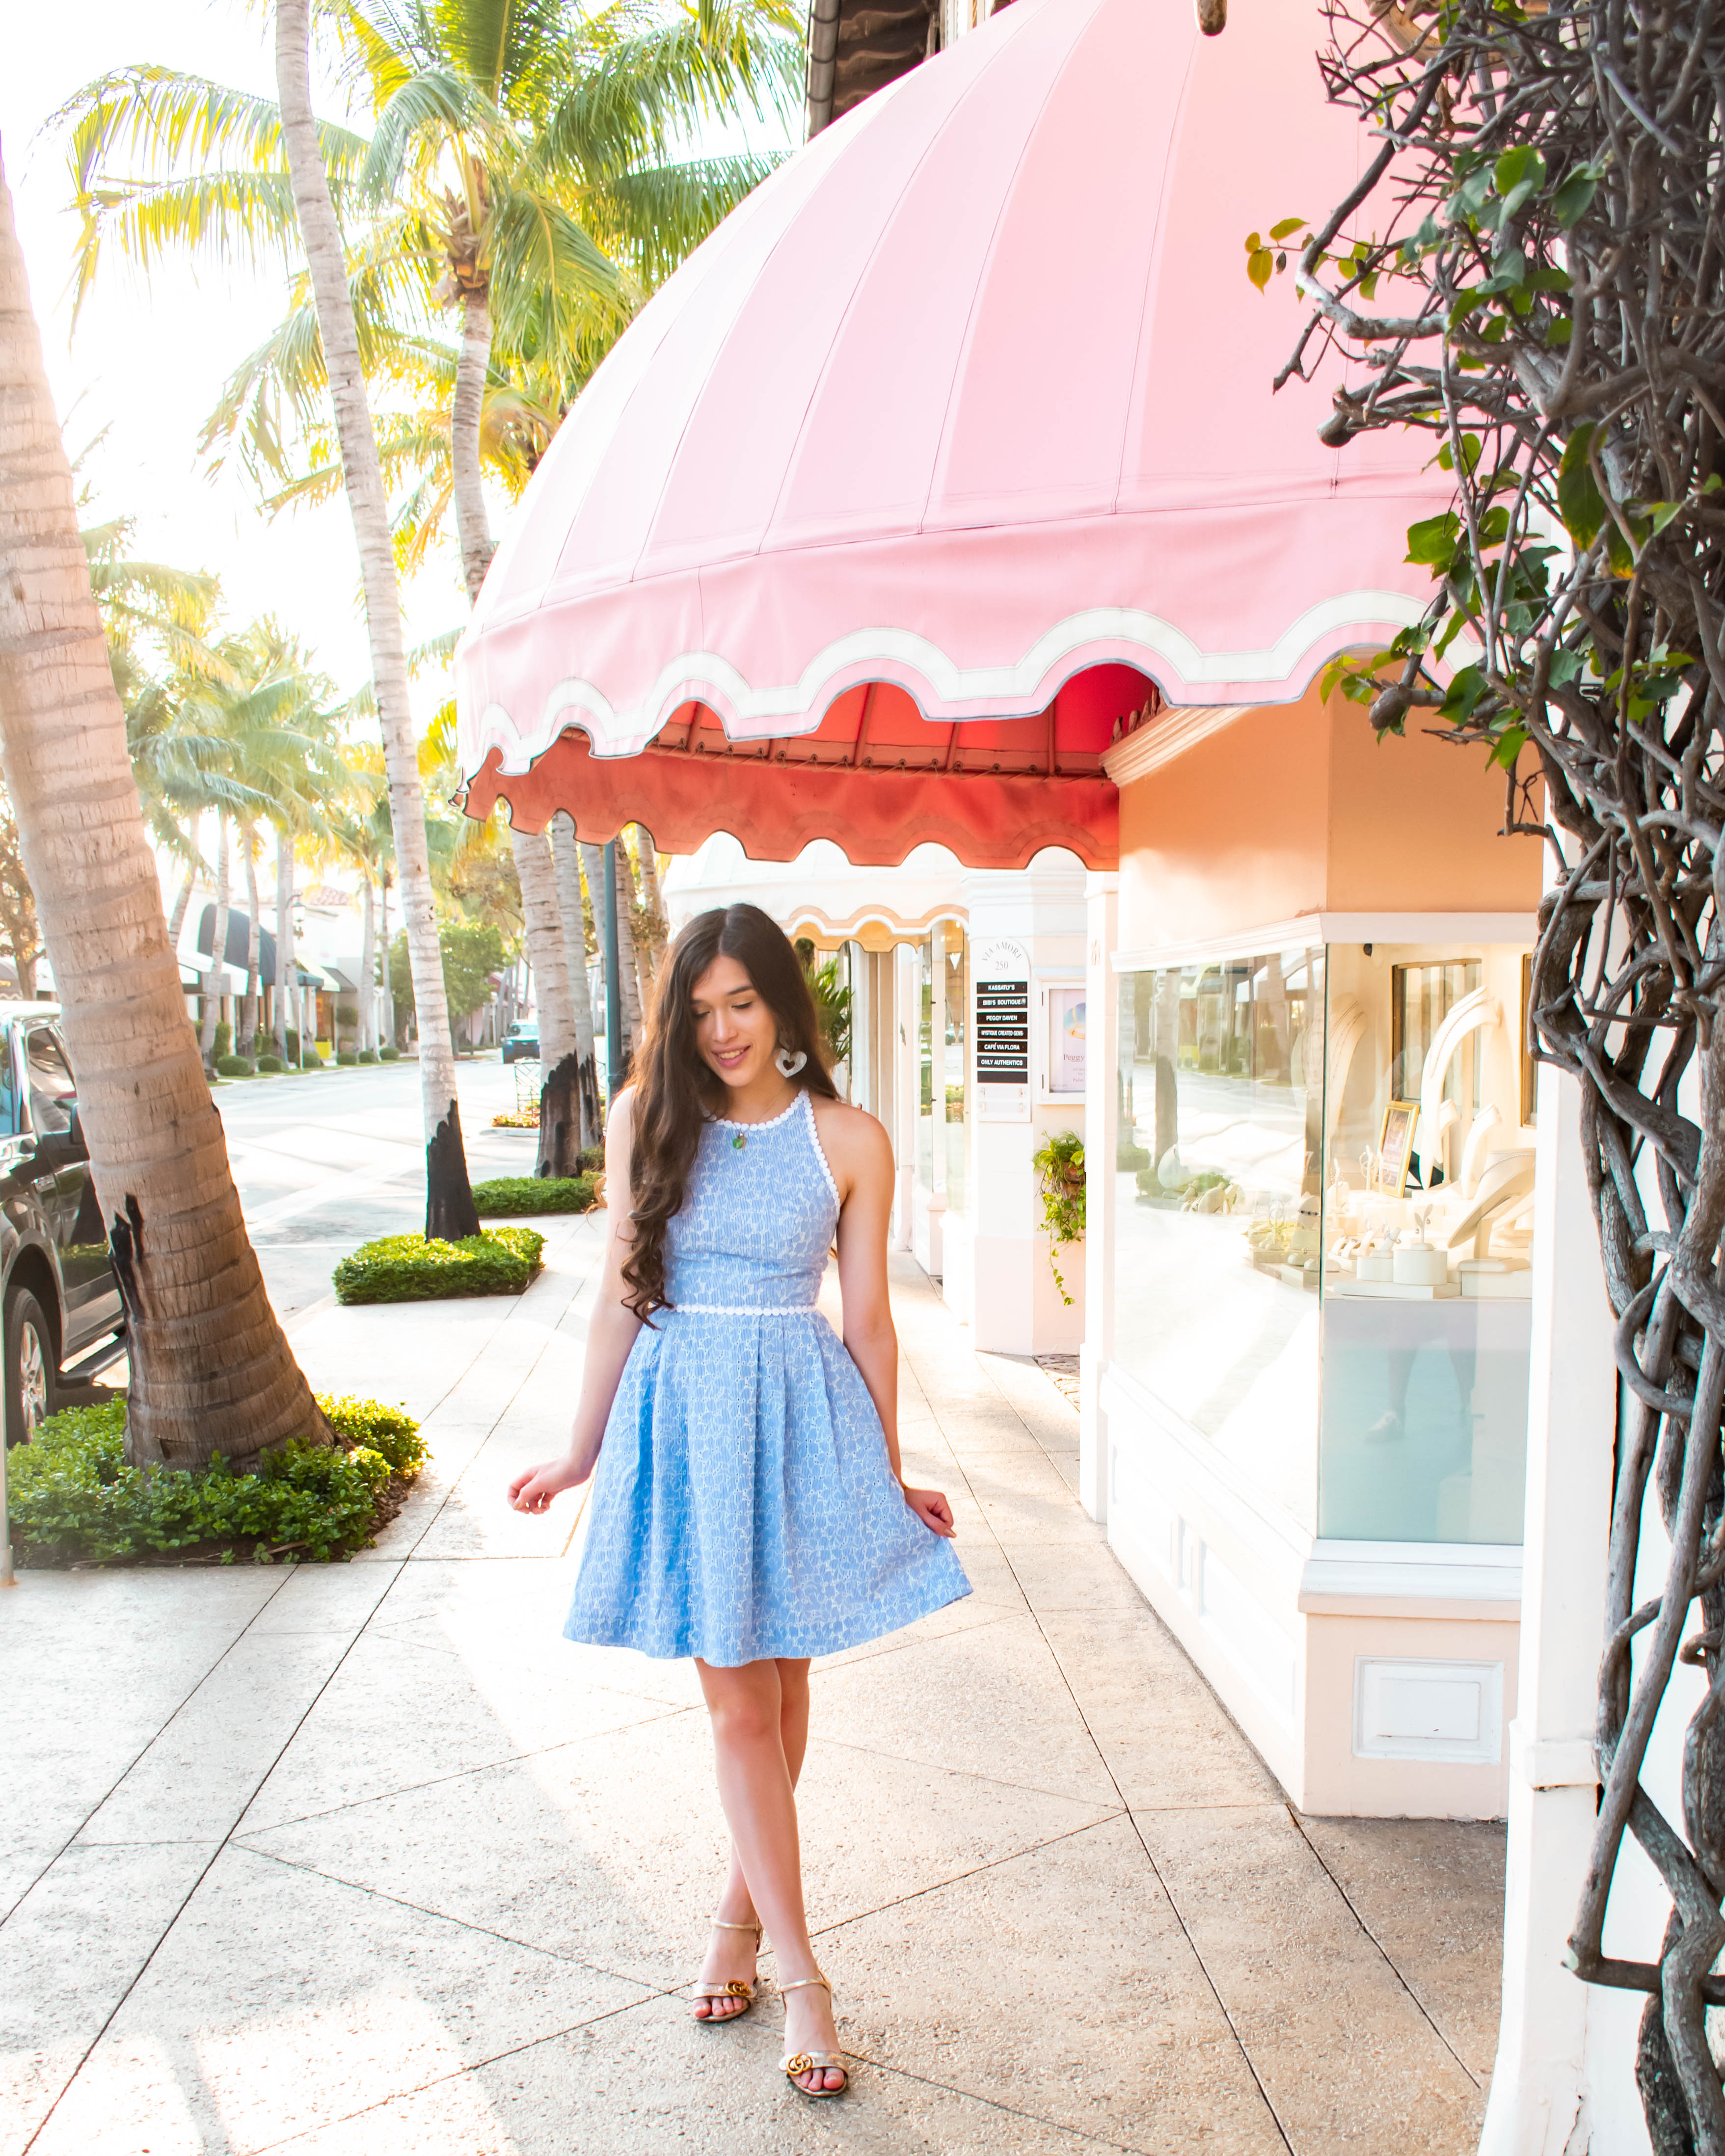 Style and travel blogger Eva Darling wearing a Lilly Pulitzer Tori Dress striped lace fit and flare flattering summer sundress on instagrammable Worth Ave in Palm Beach preppy women's clothing